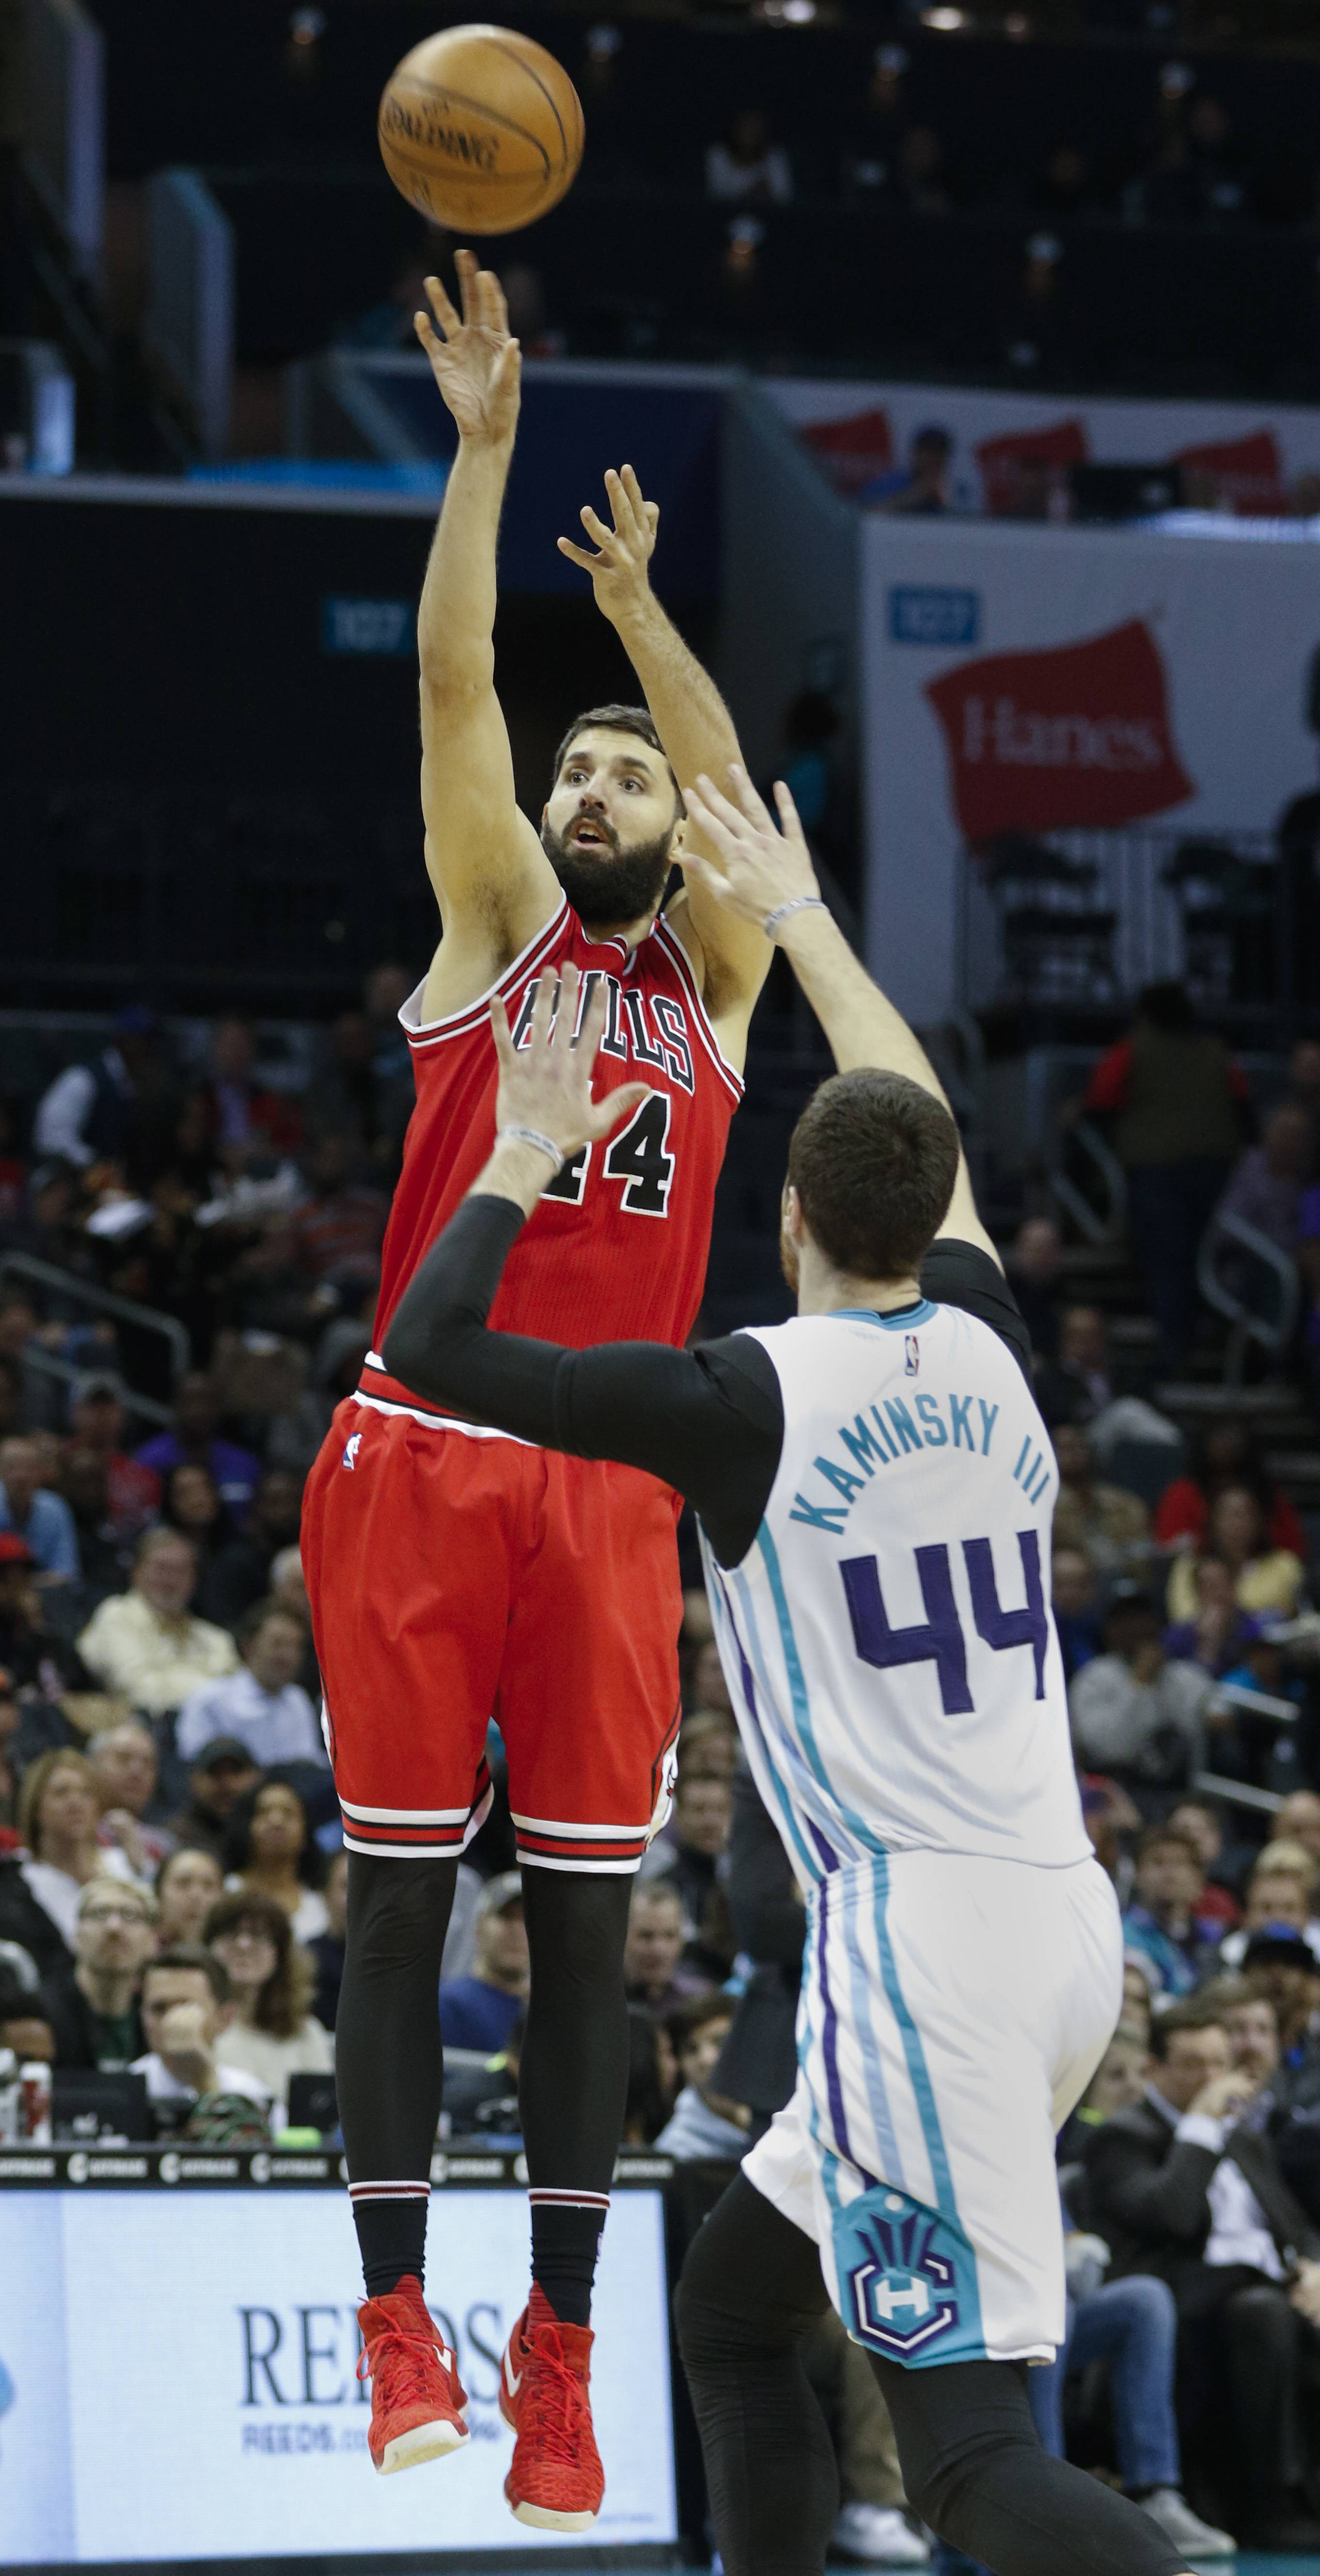 Rondo, Mirotic step forward to help Bulls end losing streak